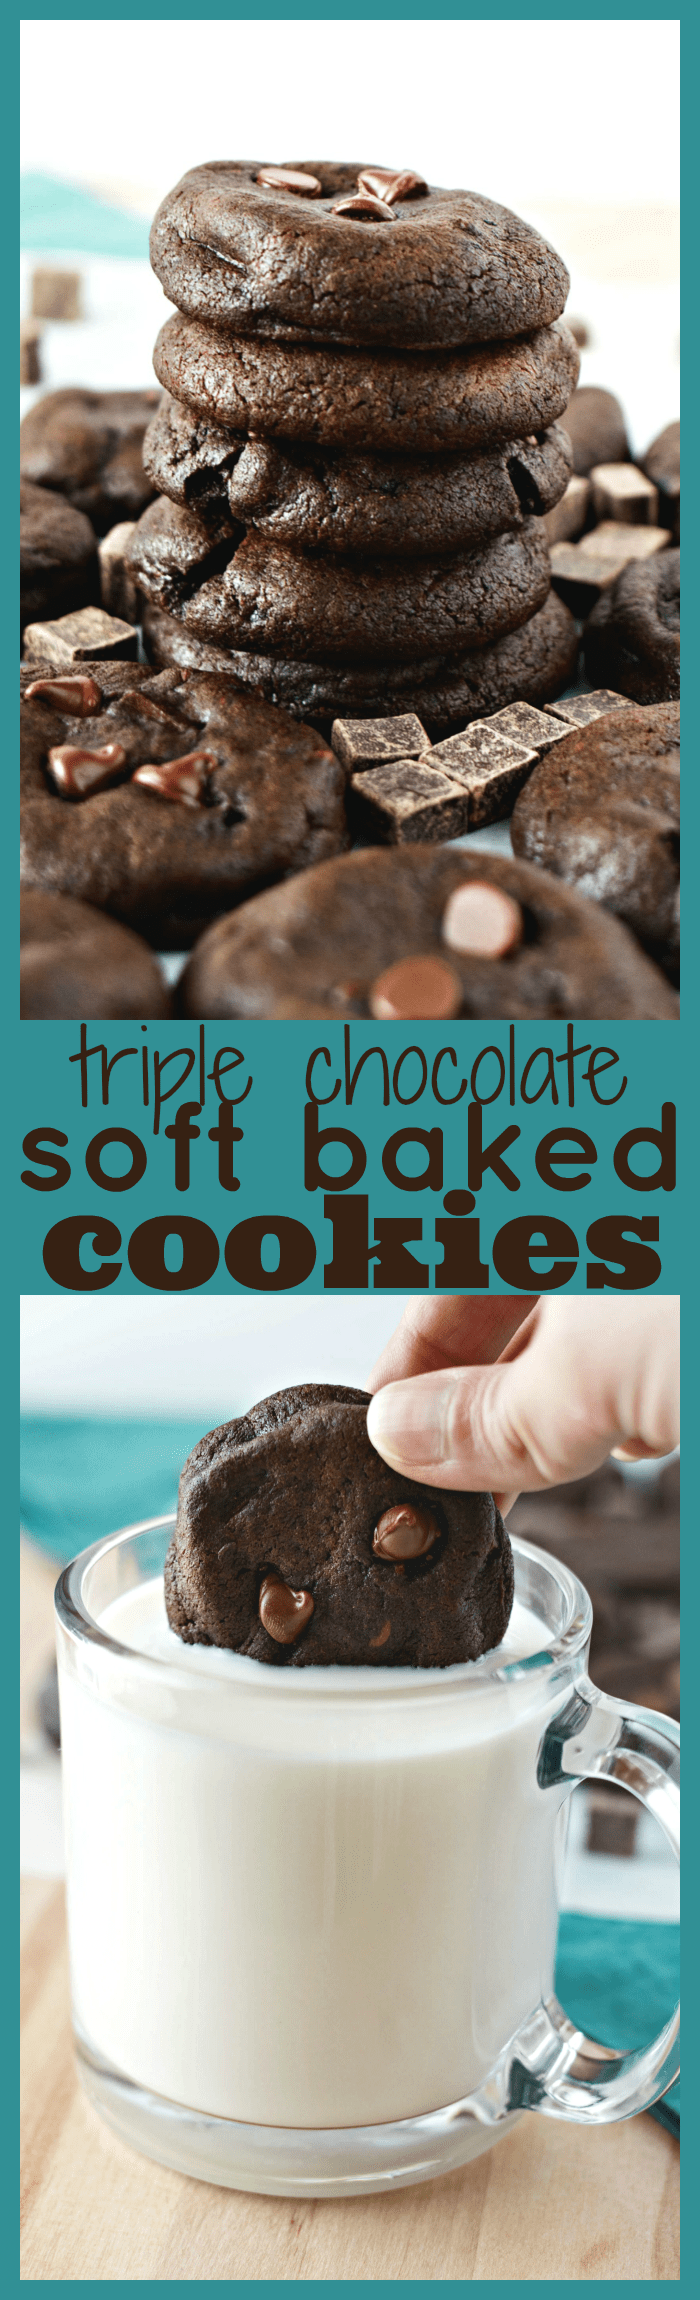 Triple Chocolate Soft Baked Cookies – A decadent soft baked cookie made with three kinds of chocolate: cocoa powder, chocolate